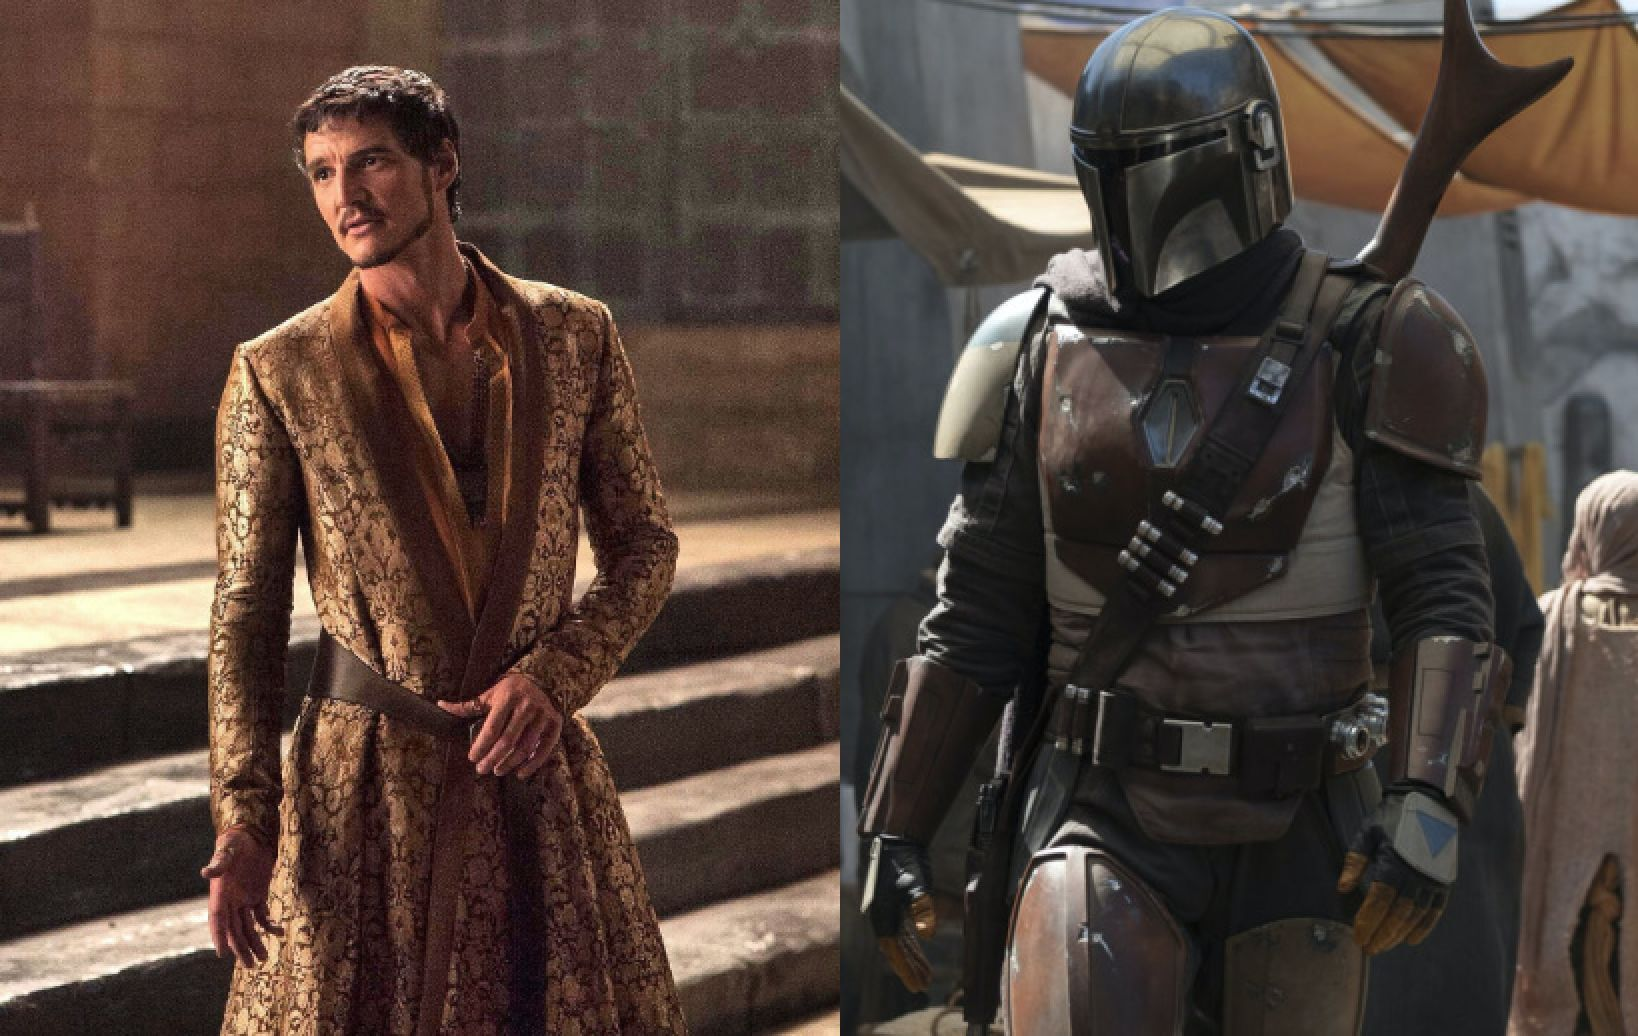 Game of Thrones star Pedro Pascal lands the lead role in Disney's Star Wars show The Mandalorian